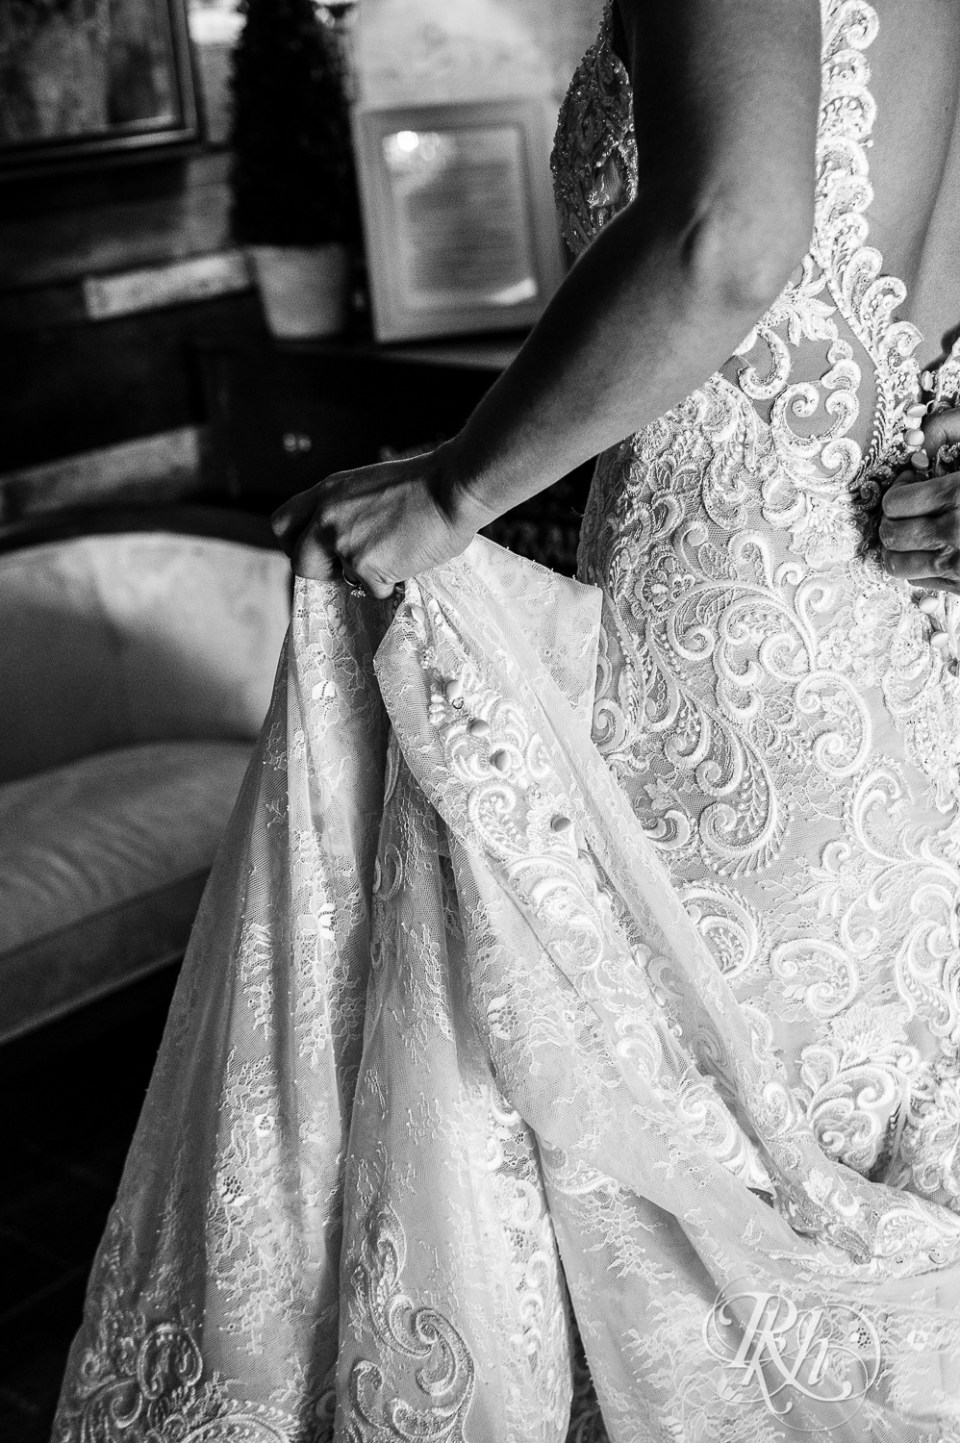 wedding dress bride holding